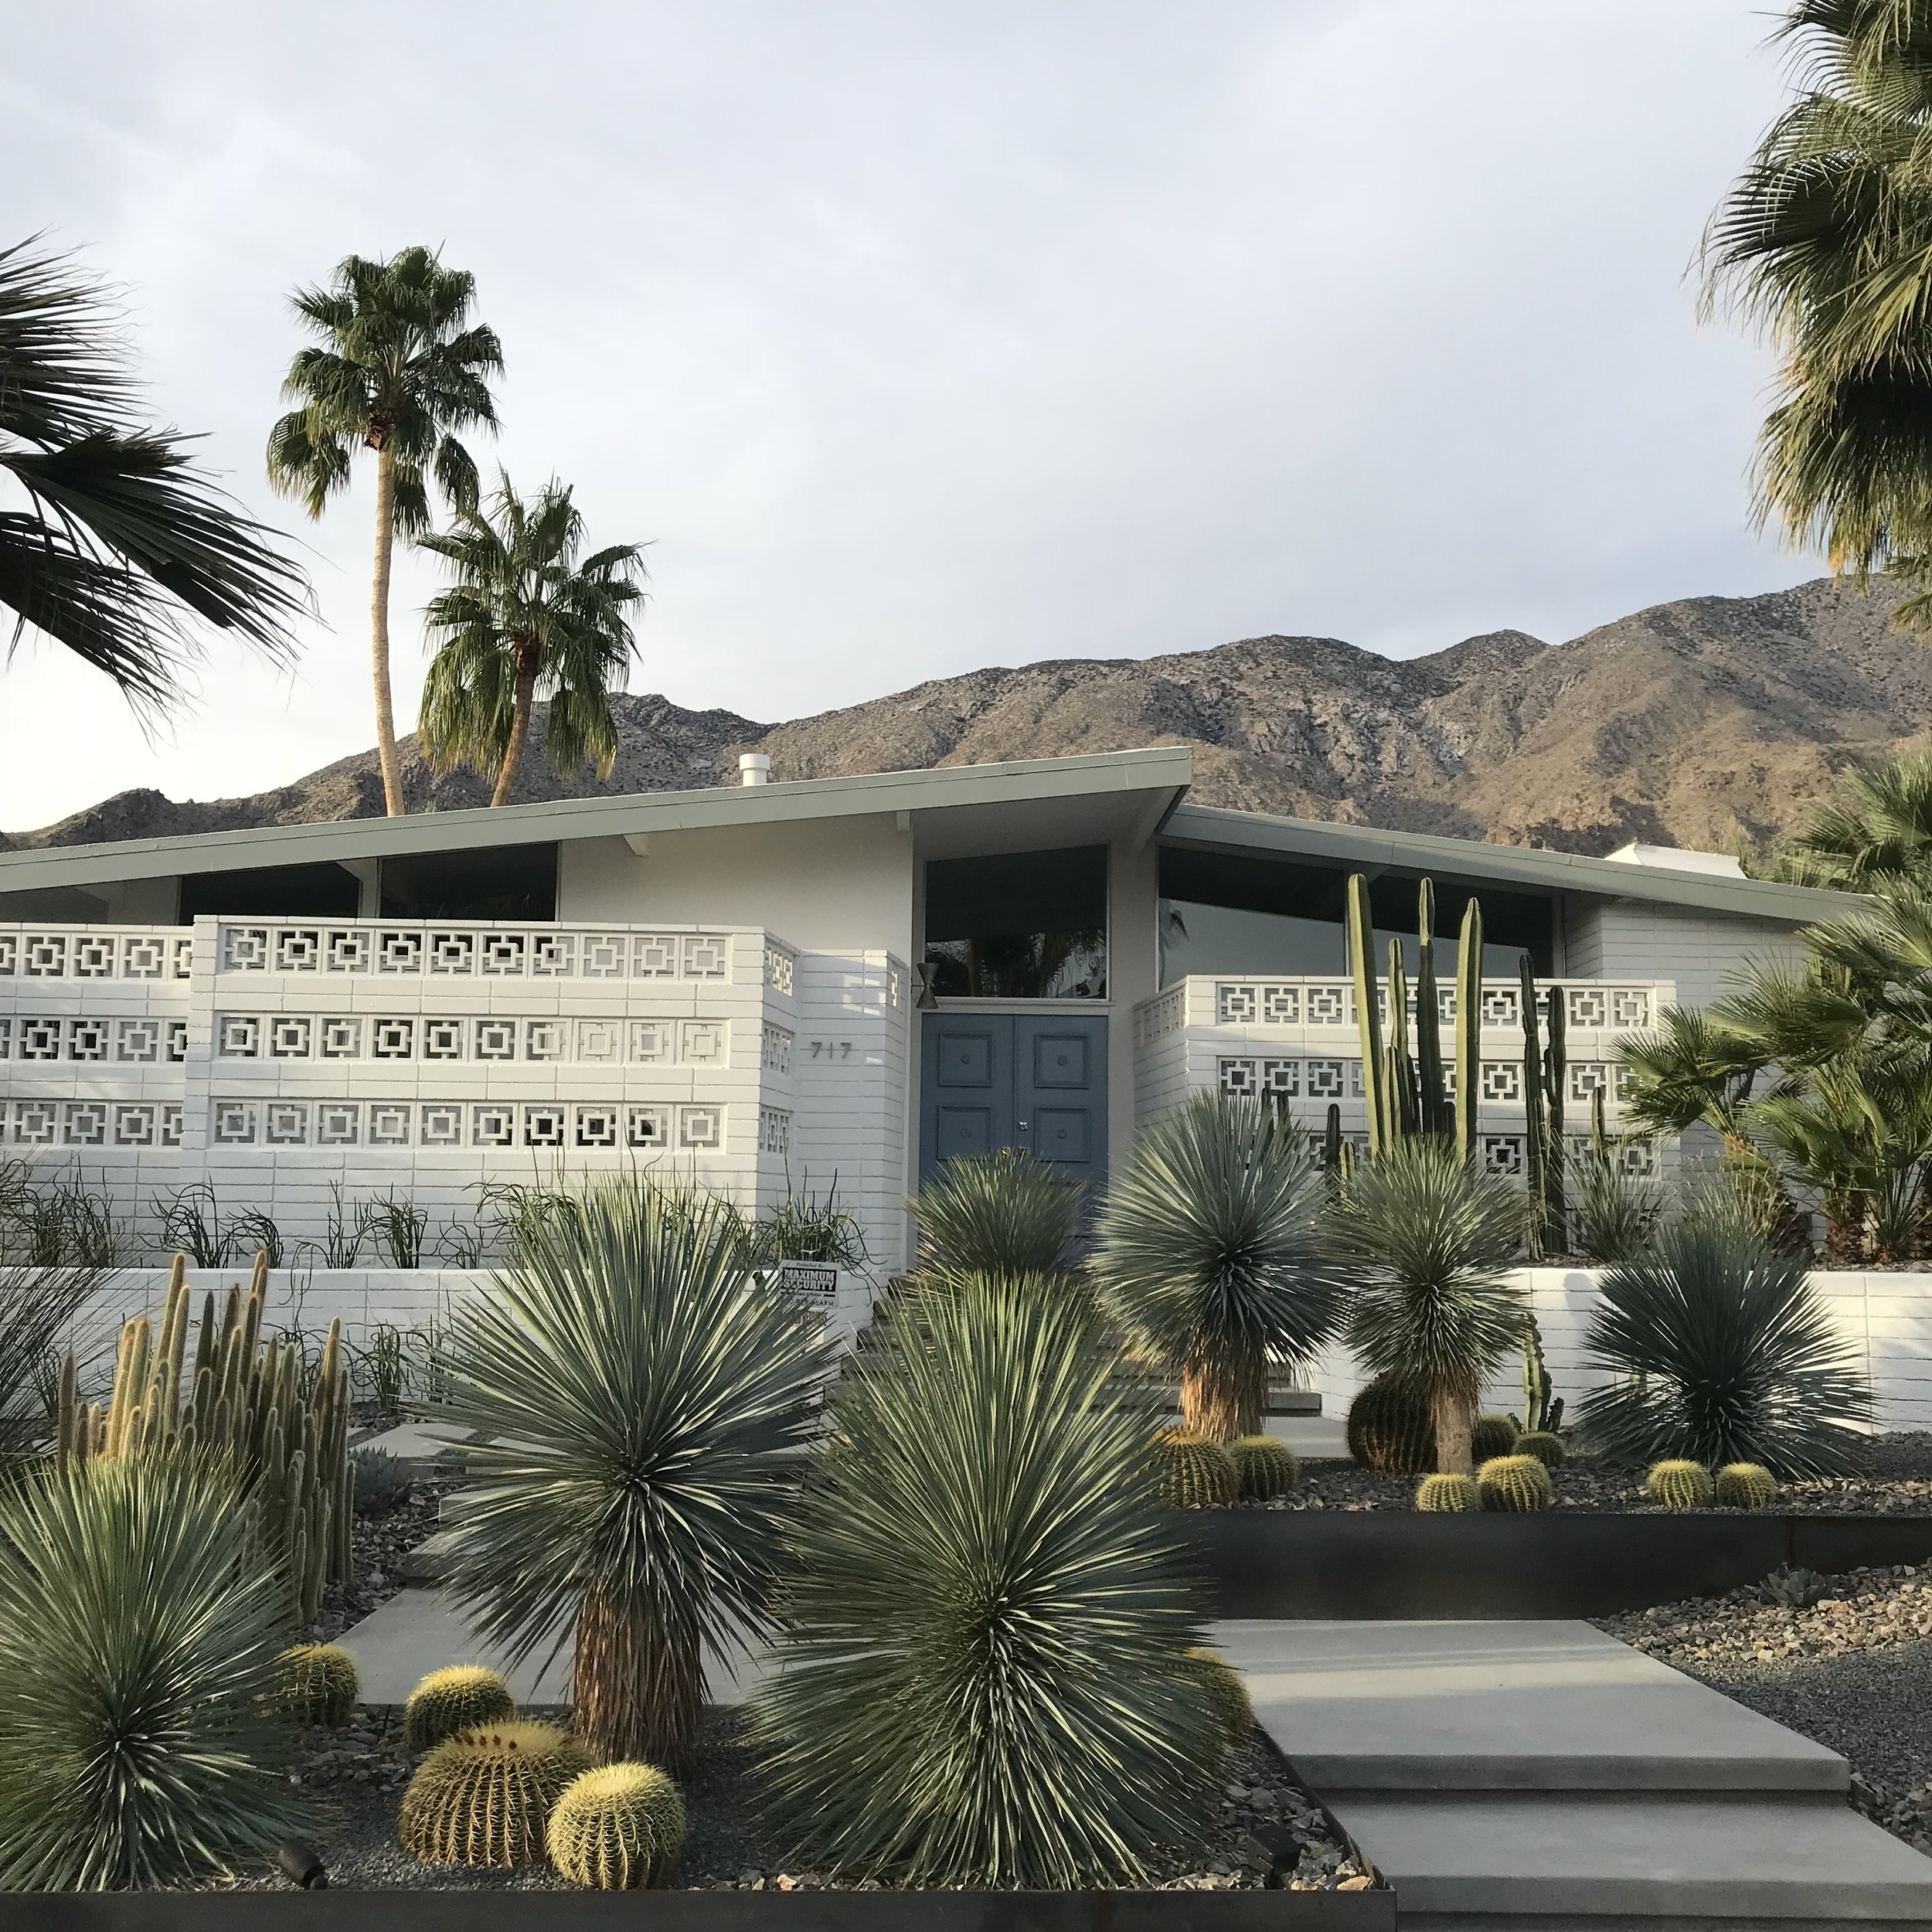 bungalow and cacti. Blue Moon furniture store winnipeg. Architectural tour palm springs.JPG